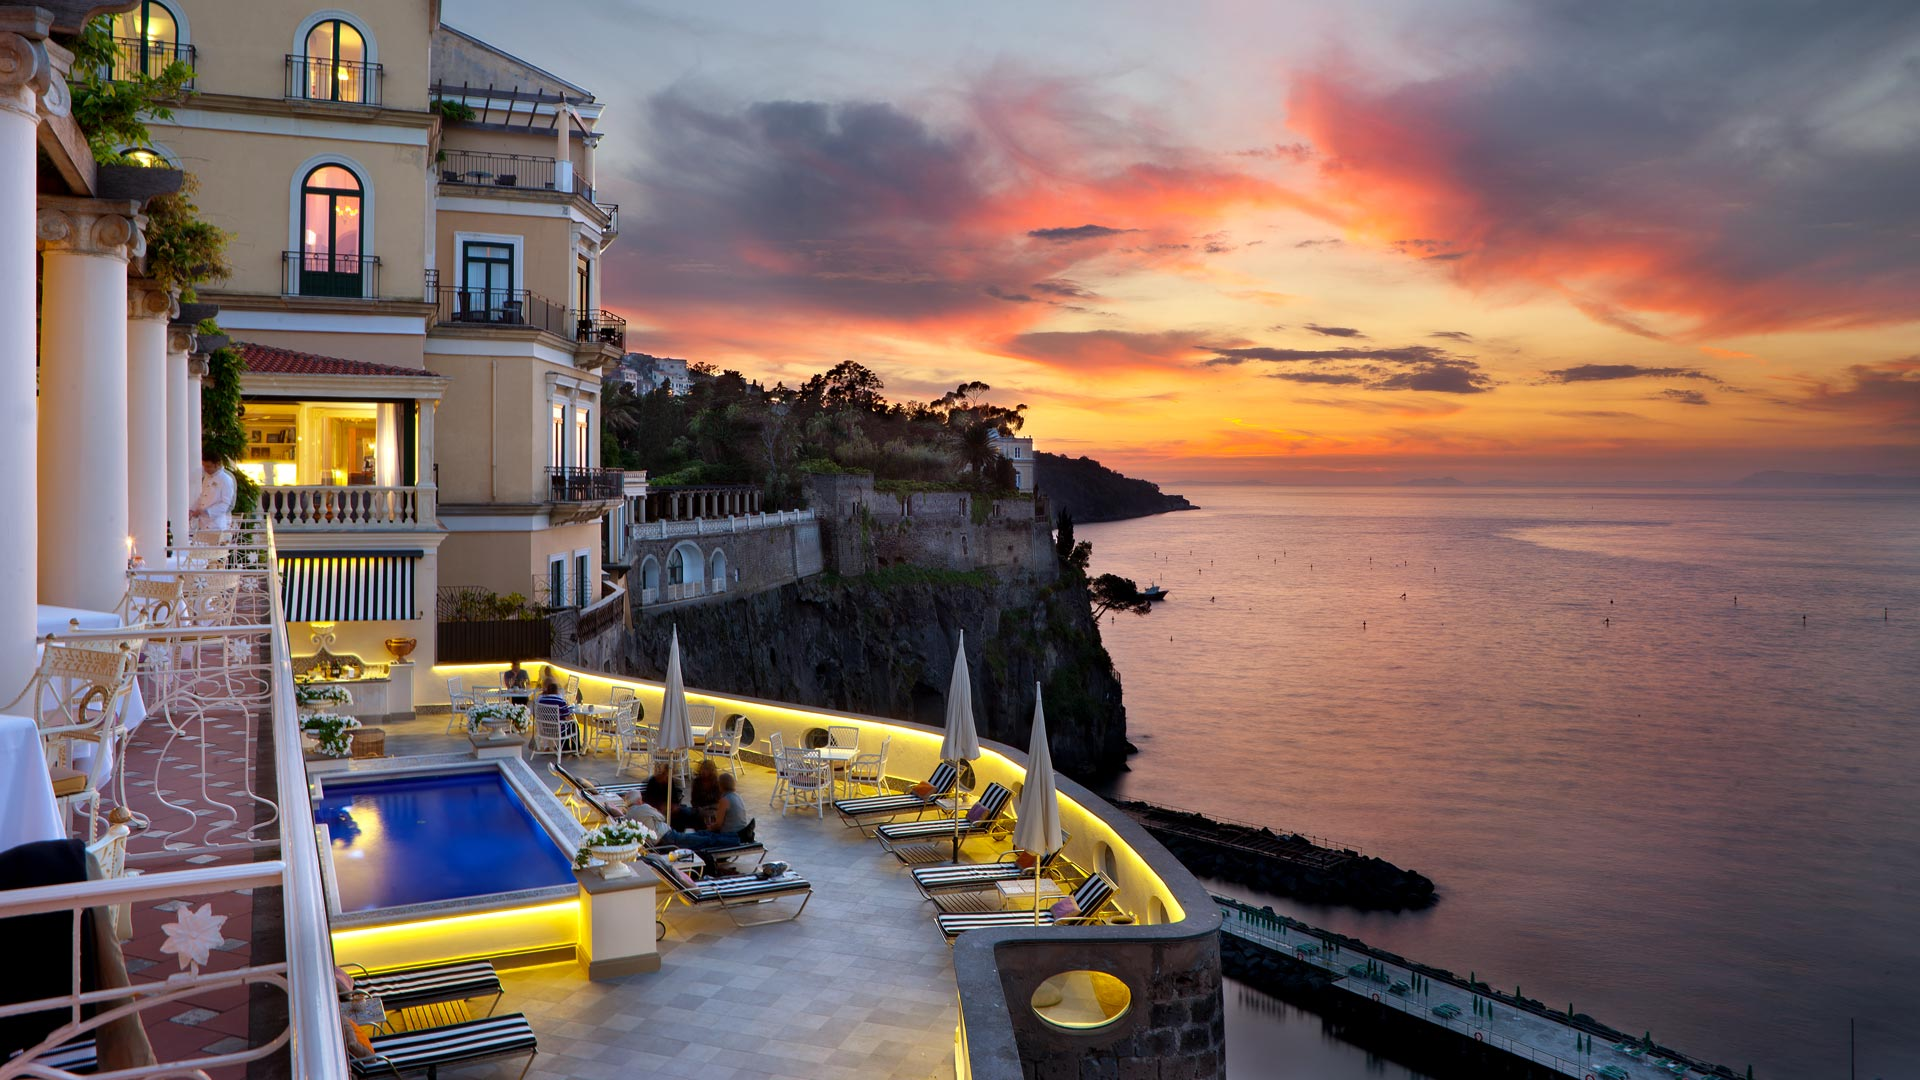 hotel sorrento Grand hotel royal is a 5 star hotel in sorrento centre, located on a cliff top above the sea, overlooking the gulf of naples and vesuvius.